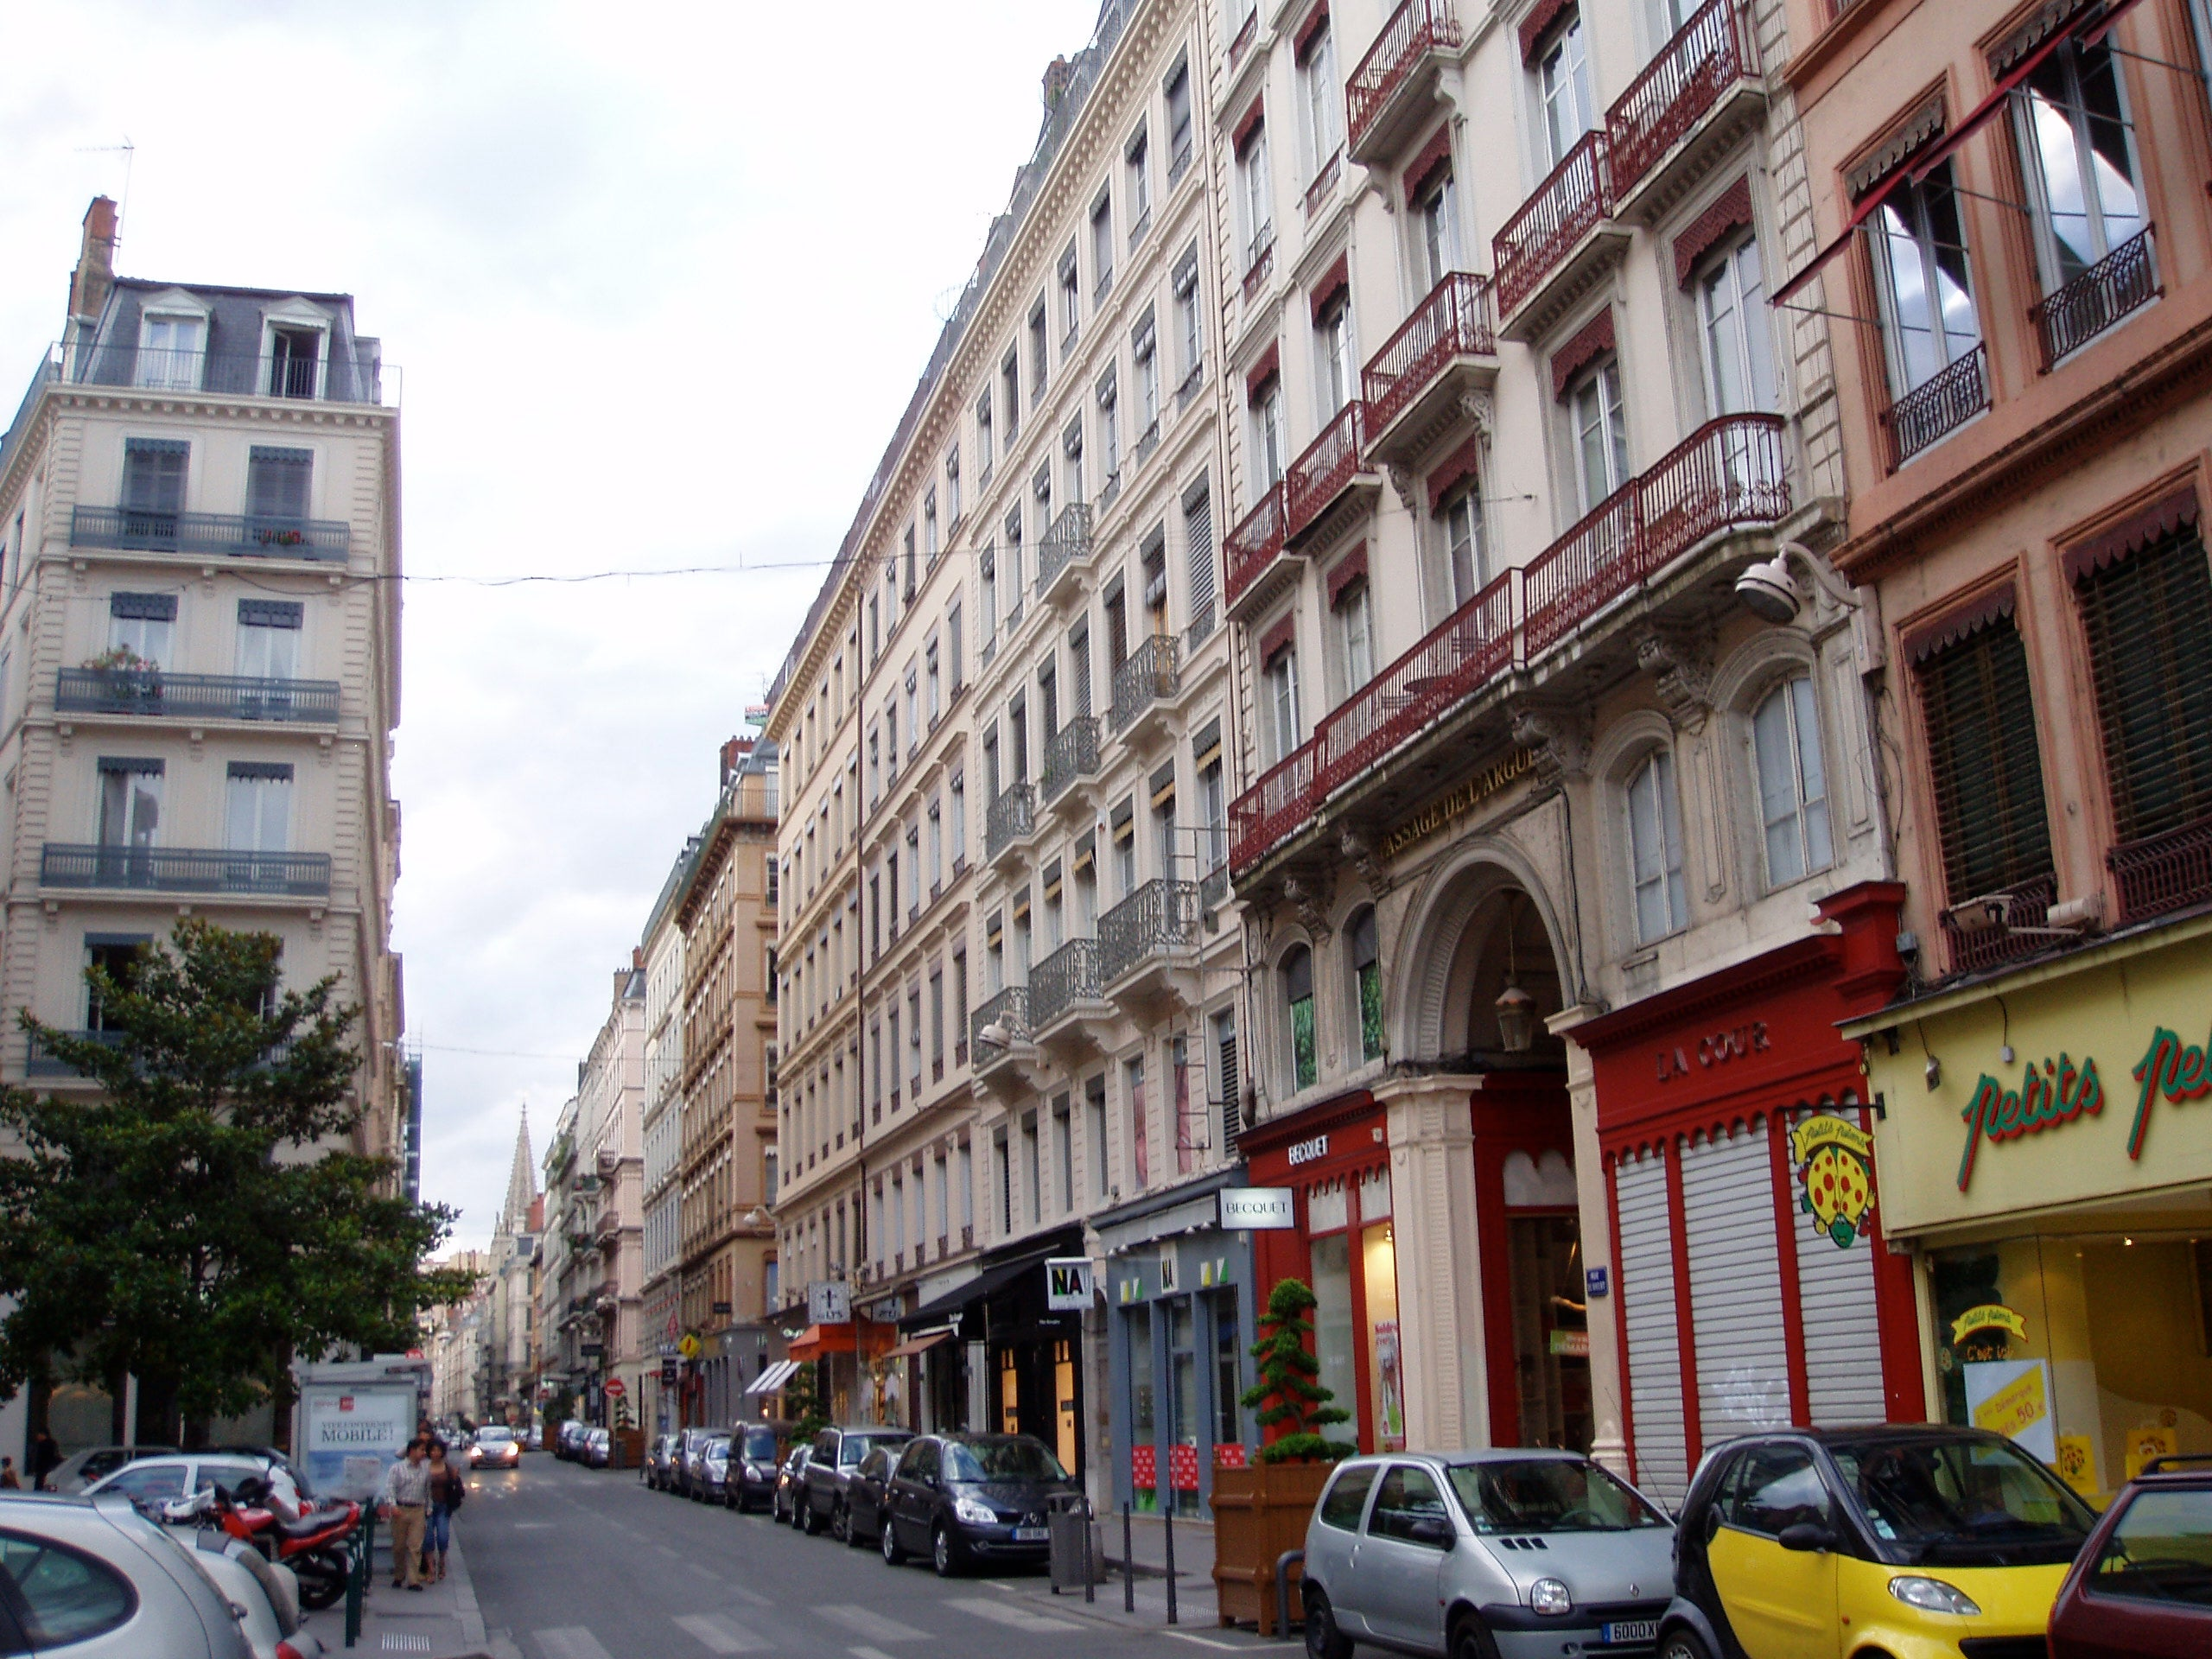 rue de brest lyon 1 exp riences et 1 photos. Black Bedroom Furniture Sets. Home Design Ideas